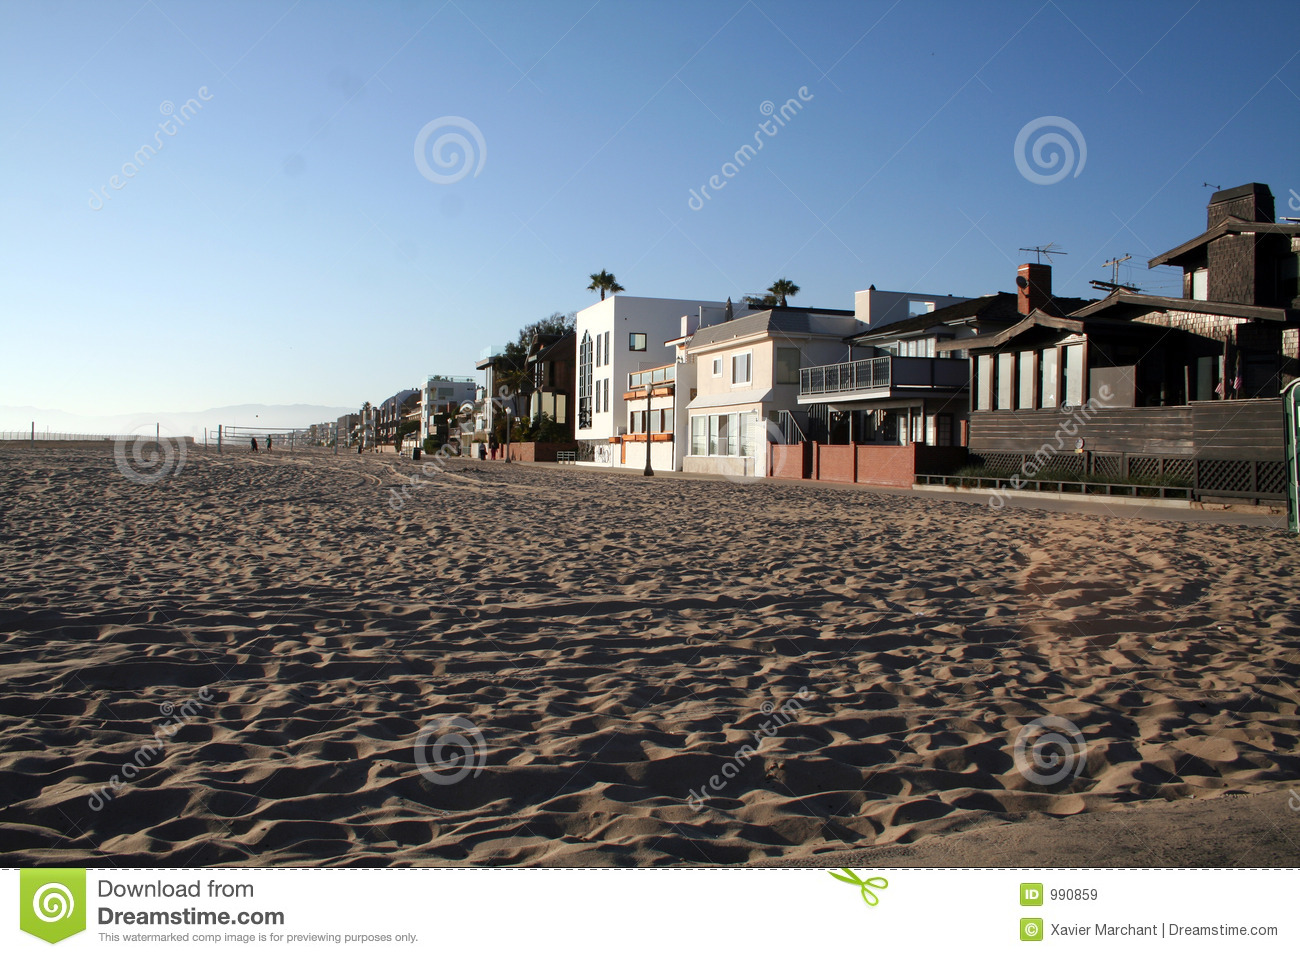 Royalty Free Stock Images Marina Del Rey Beach Image990859 together with Miami Jackson Senior High School besides Contemporary Brick House also zero Home Designs moreover Wooden Room Divider. on beach house architecture design